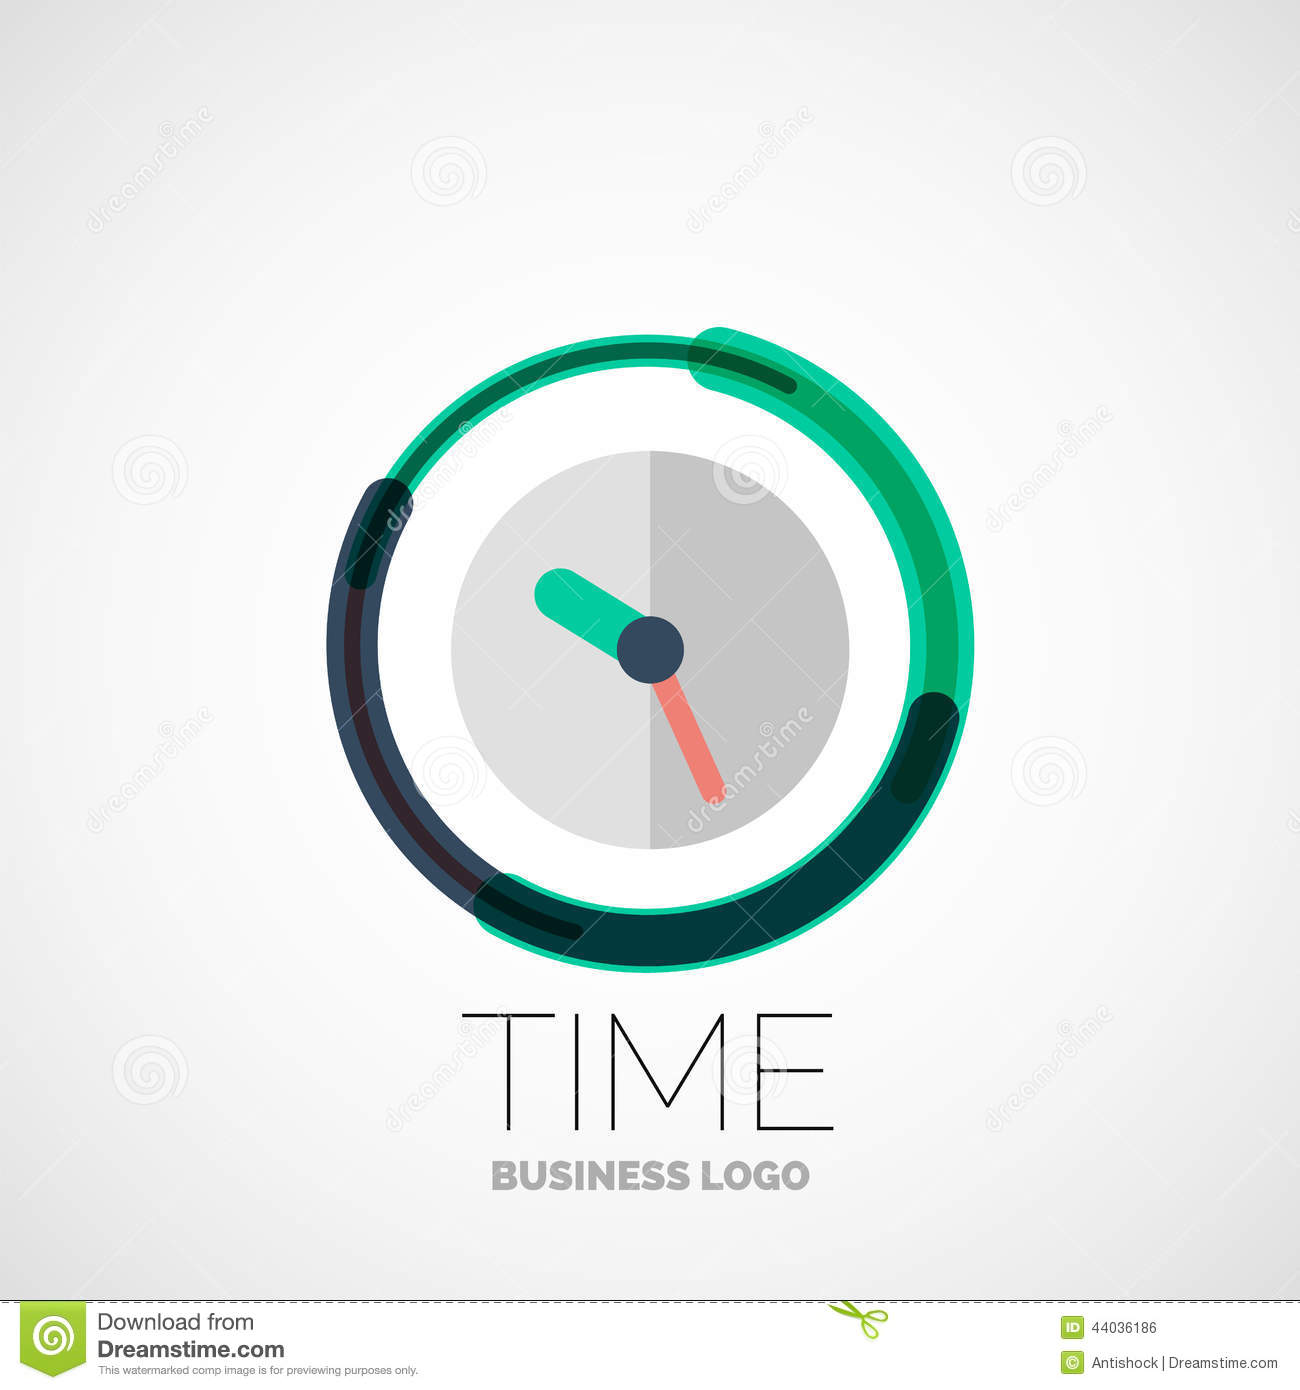 Clock time company logo business concept stock vector for Time for business